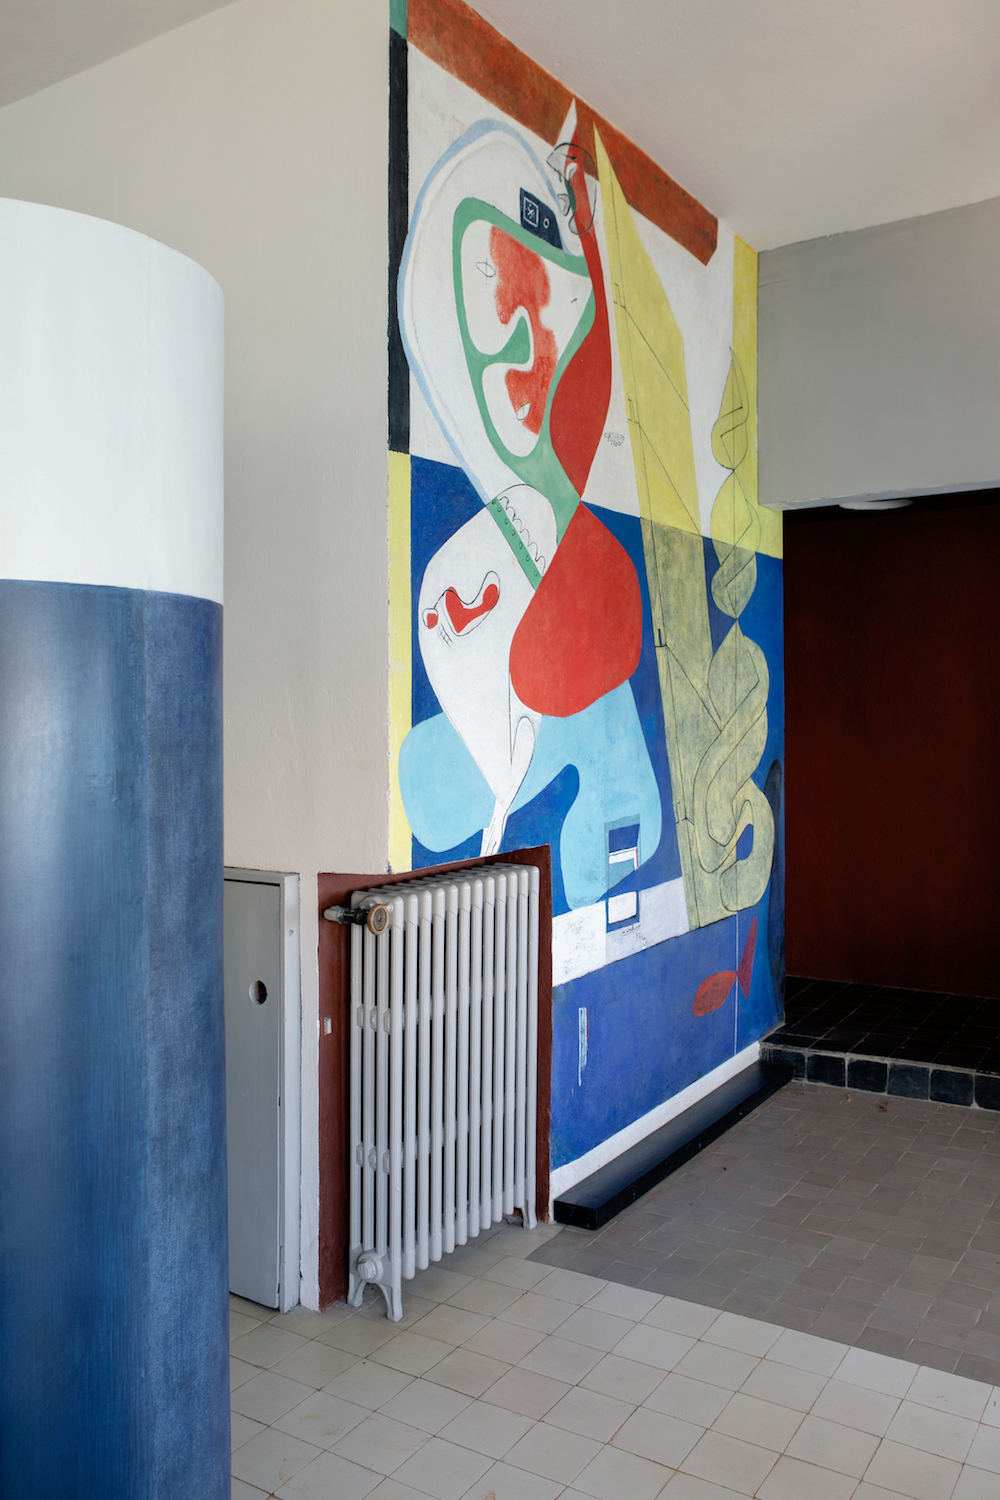 The Le Corbusier mural by the bar